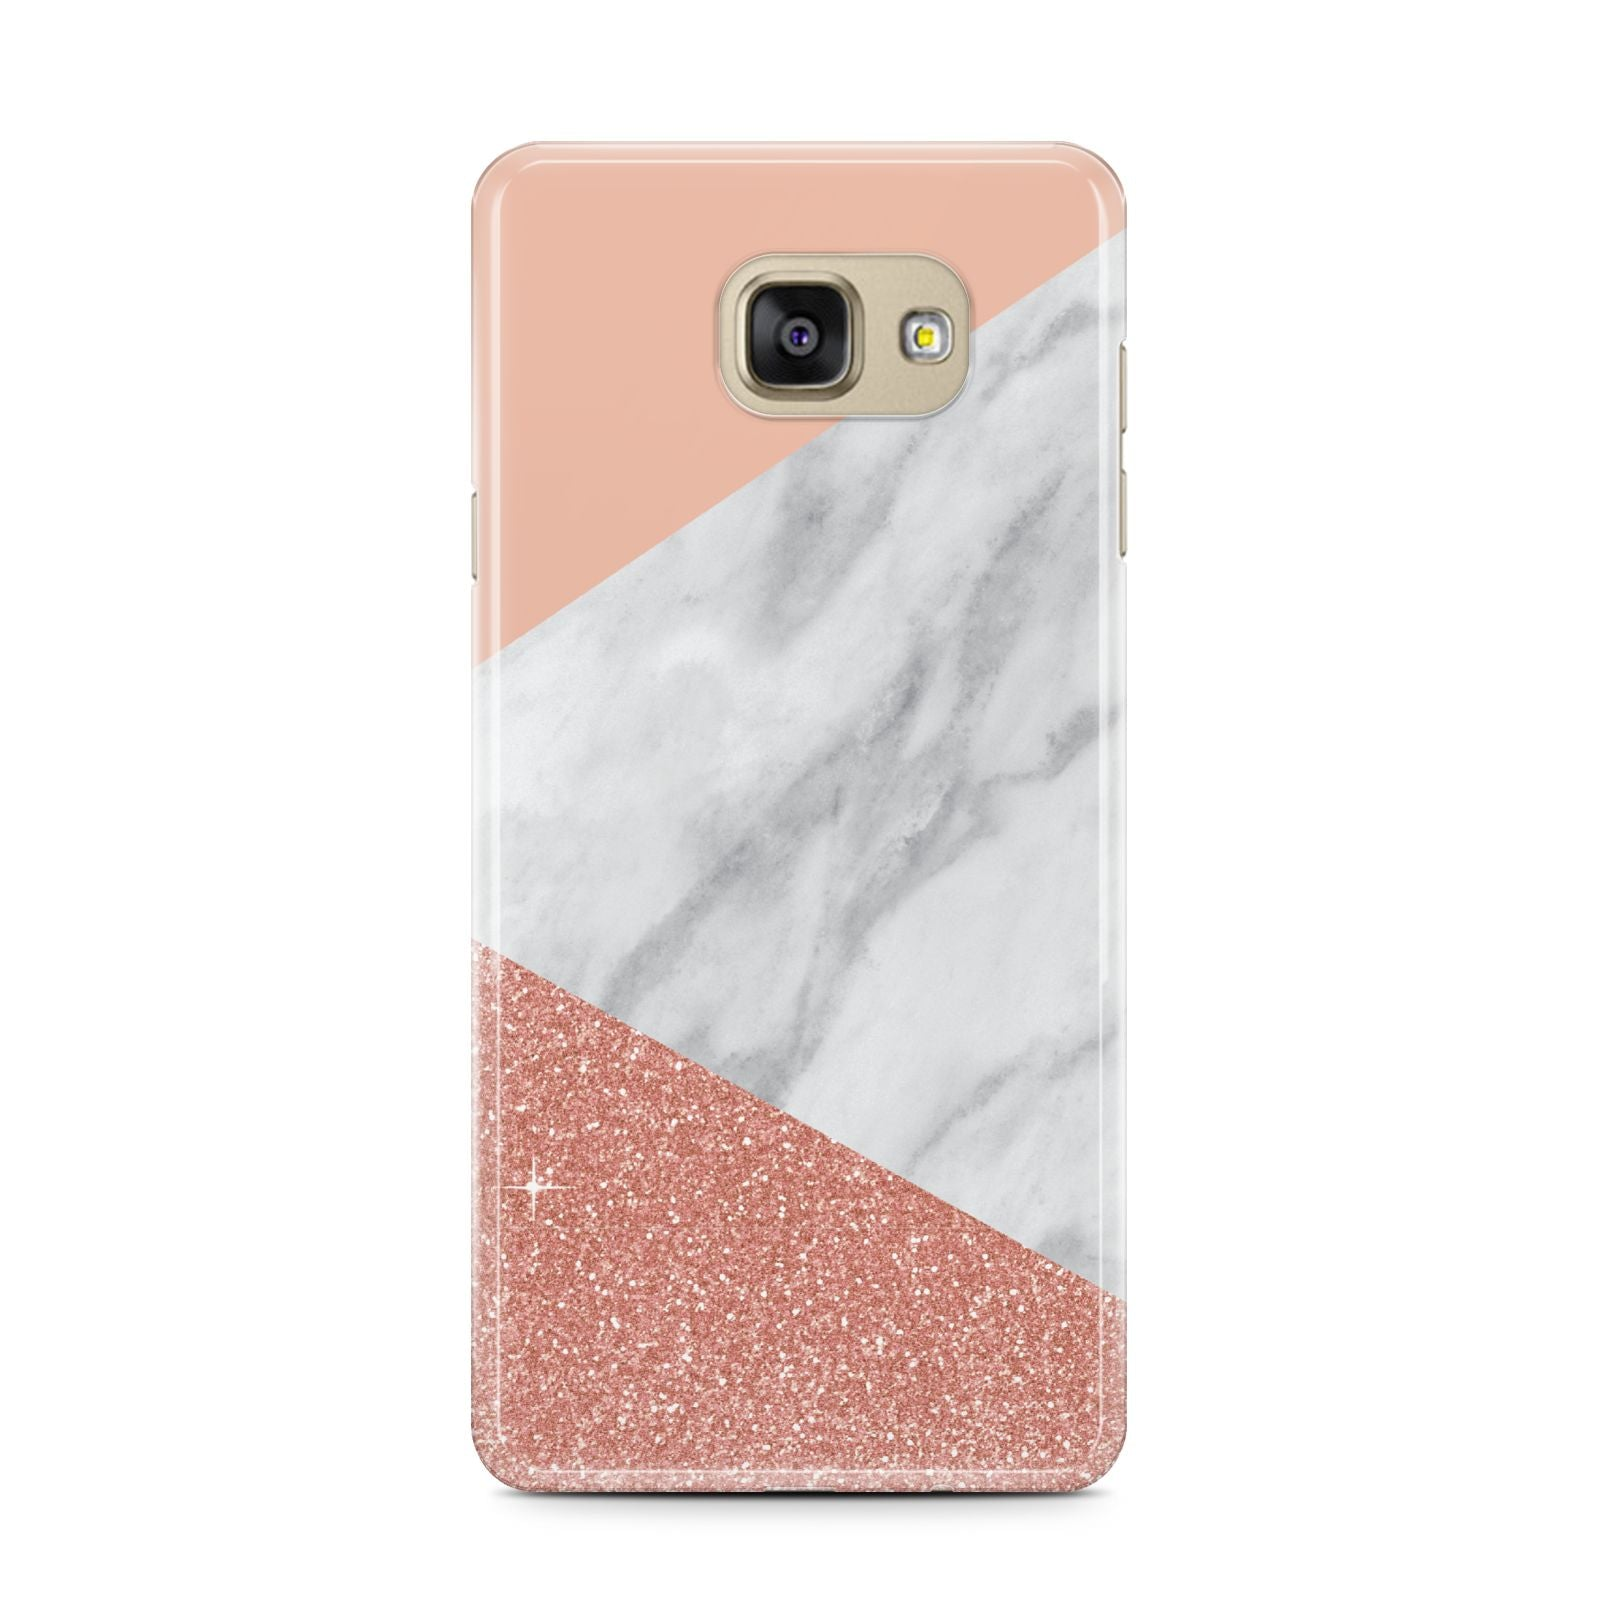 Marble White Rose Gold Samsung Galaxy A7 2016 Case on gold phone